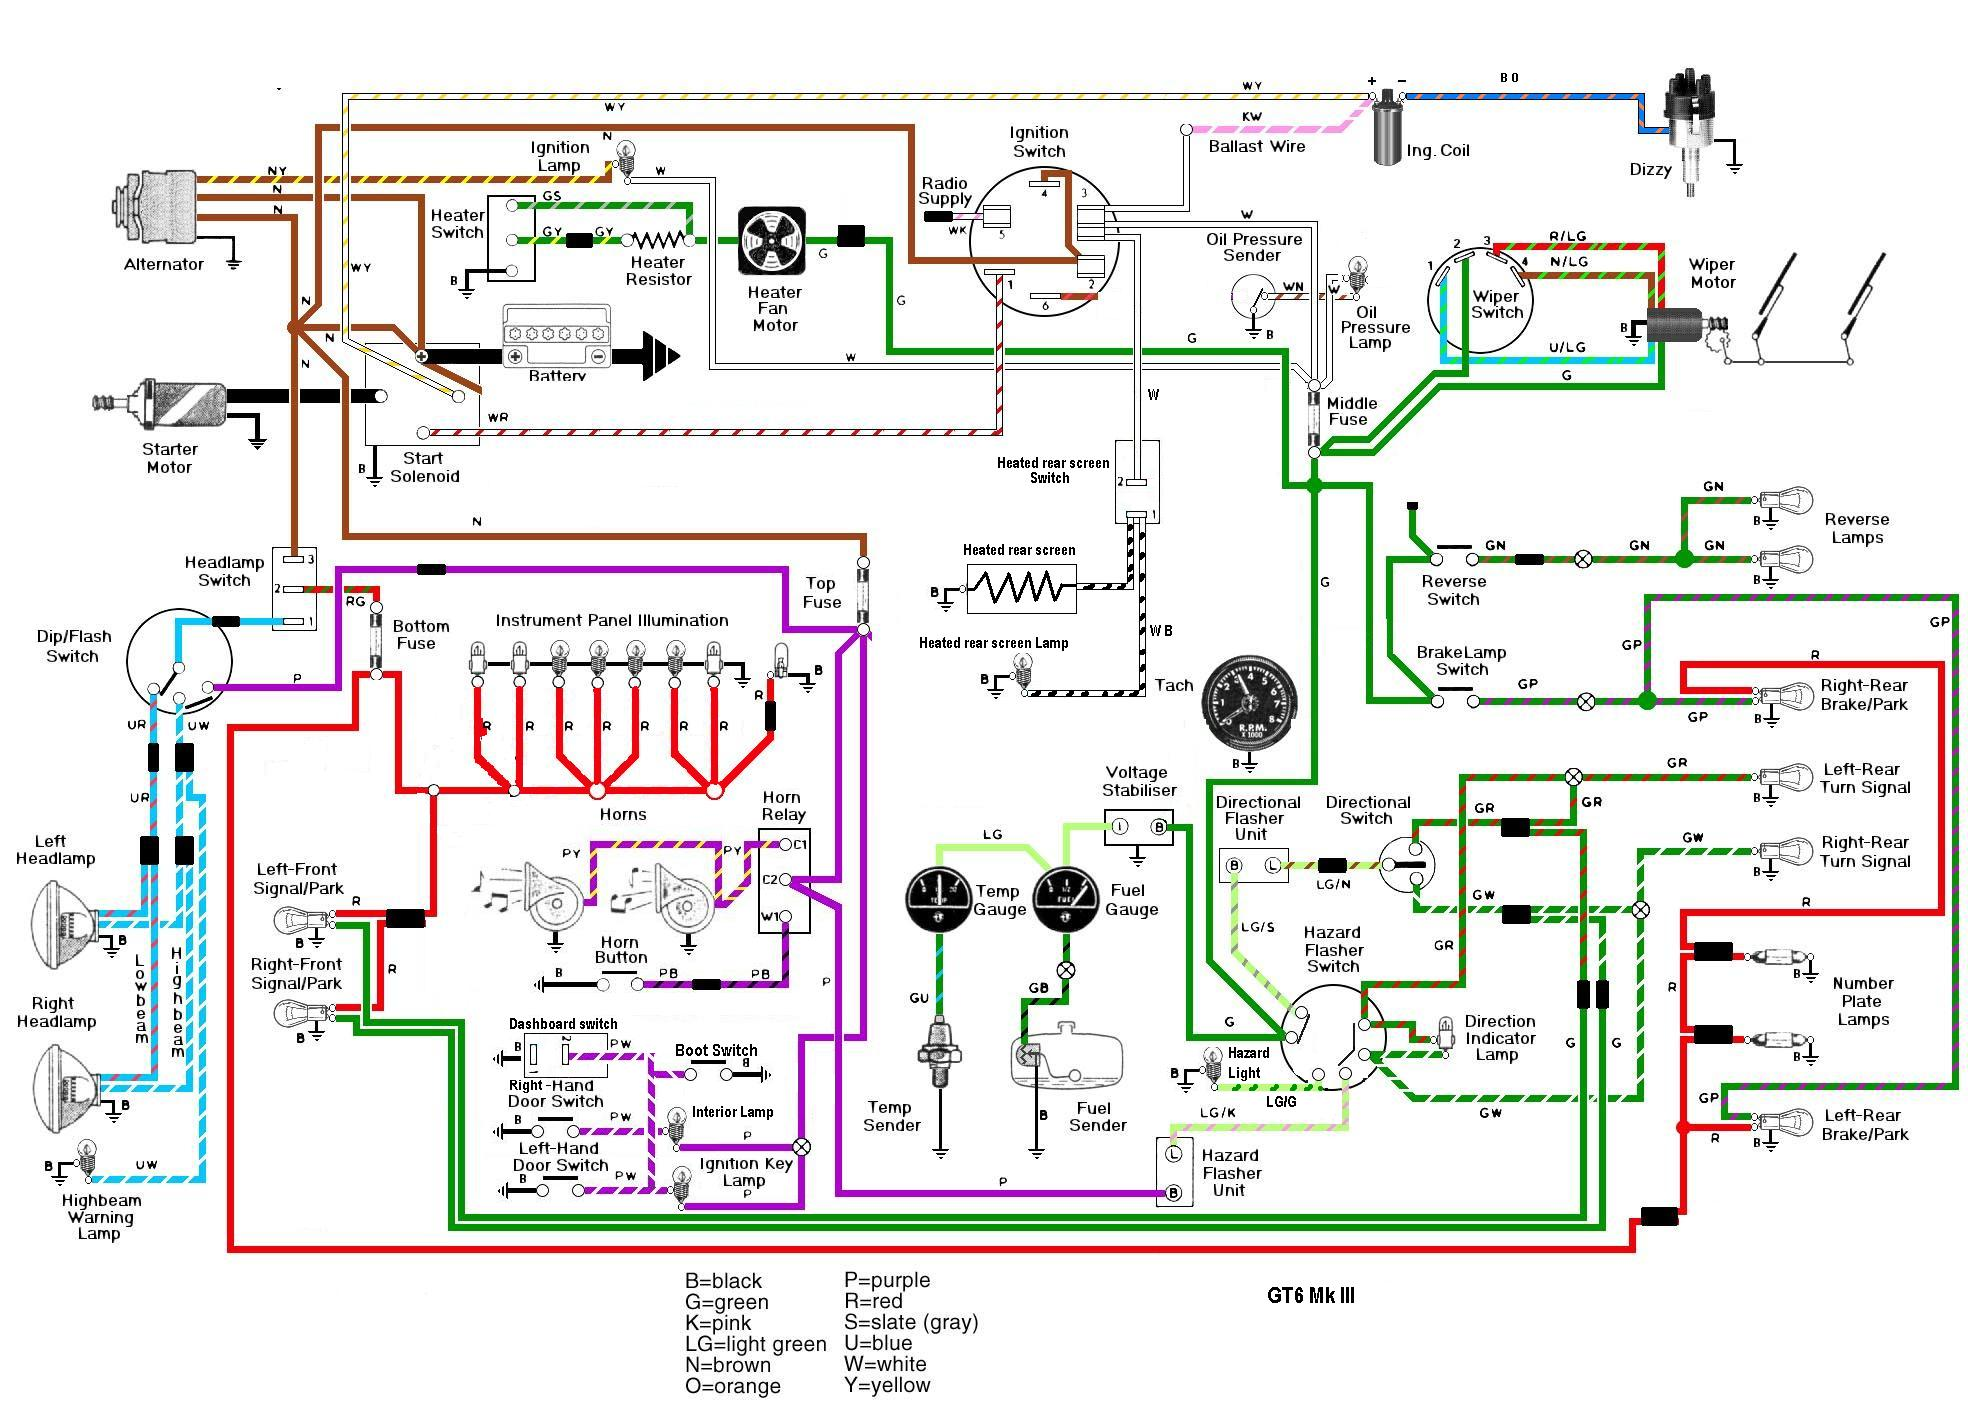 GT6MkIIIwiring wiring schematics and diagrams triumph spitfire, gt6, herald wiring diagram at gsmportal.co